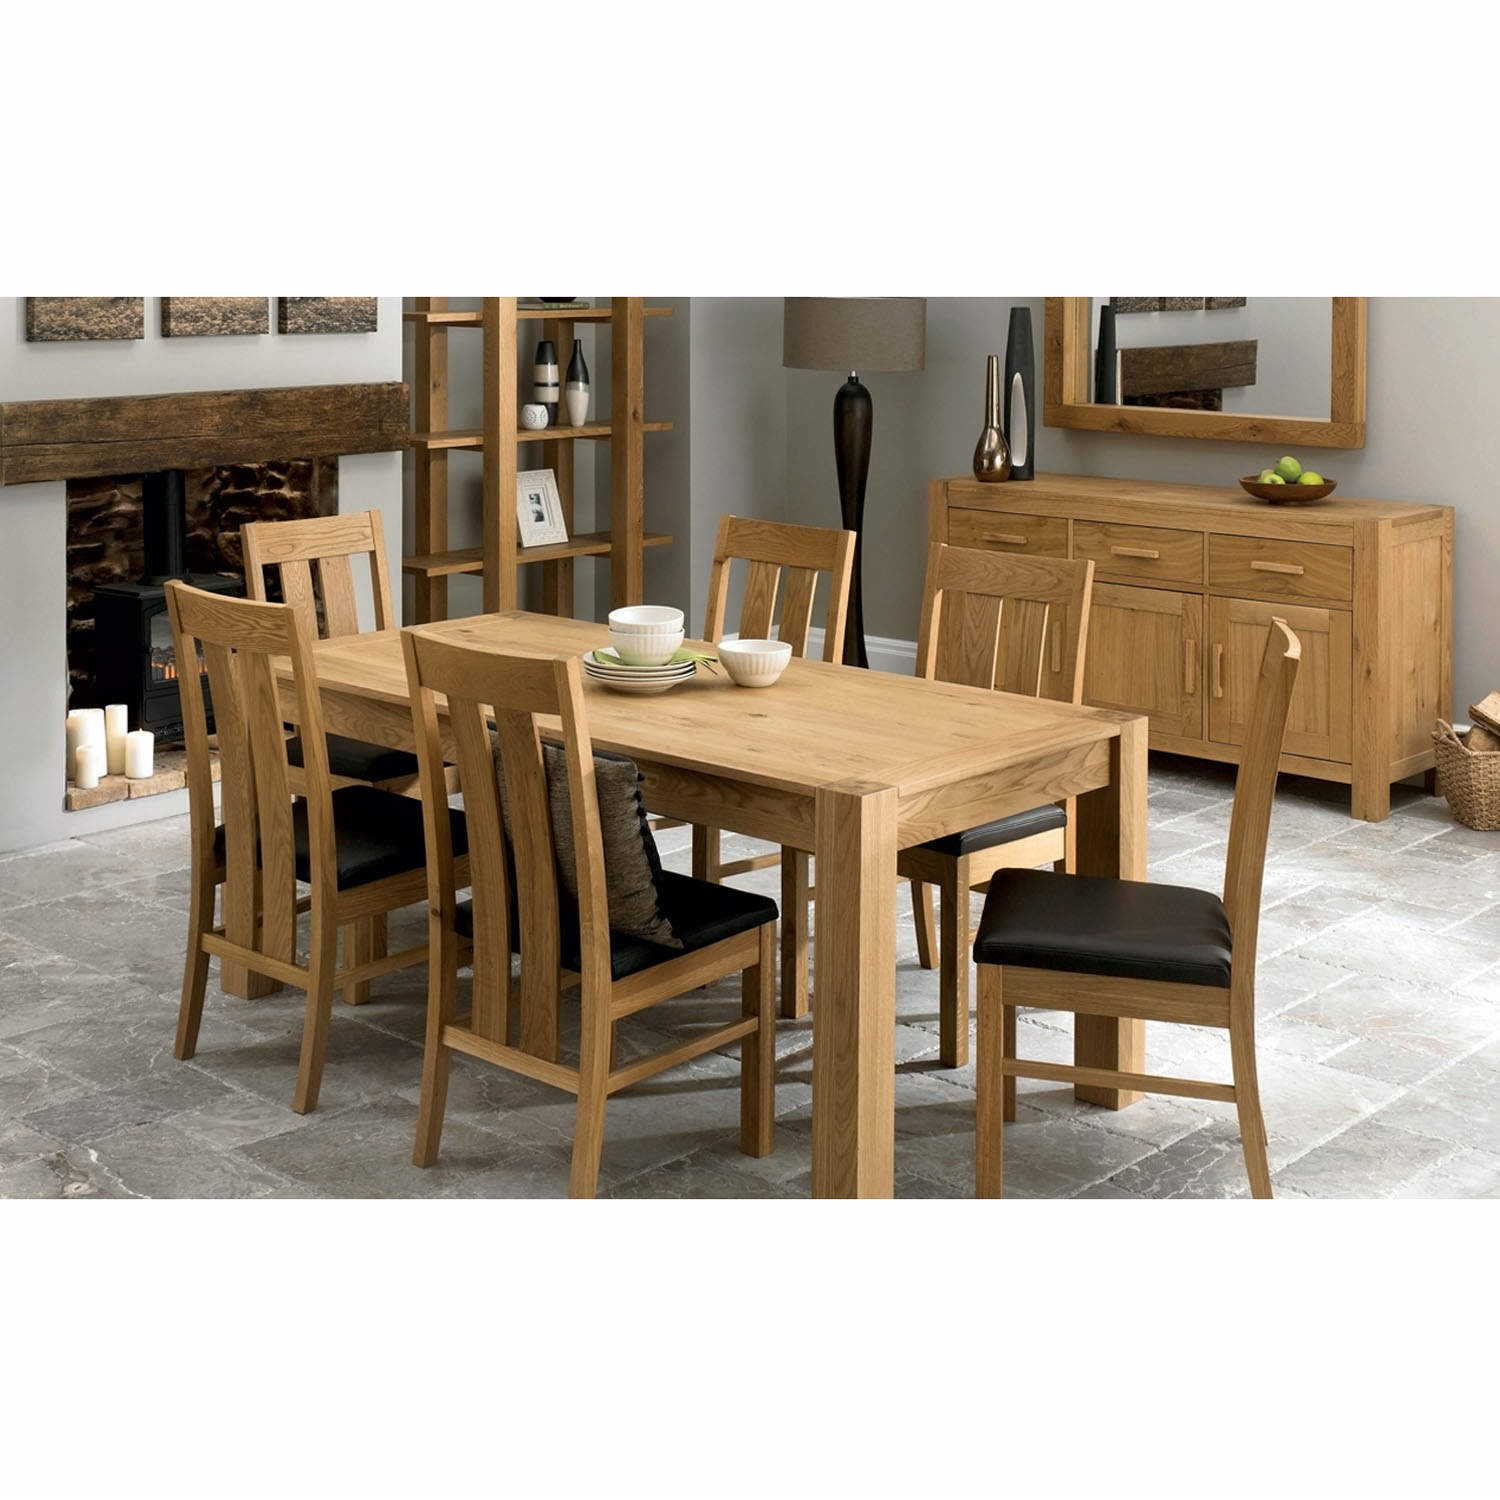 Bentley Designs Lyon Oak 6 Seater Dining Table Furniture123 : FOL0466112supersize from furniture123.co.uk size 700 x 700 jpeg 82kB